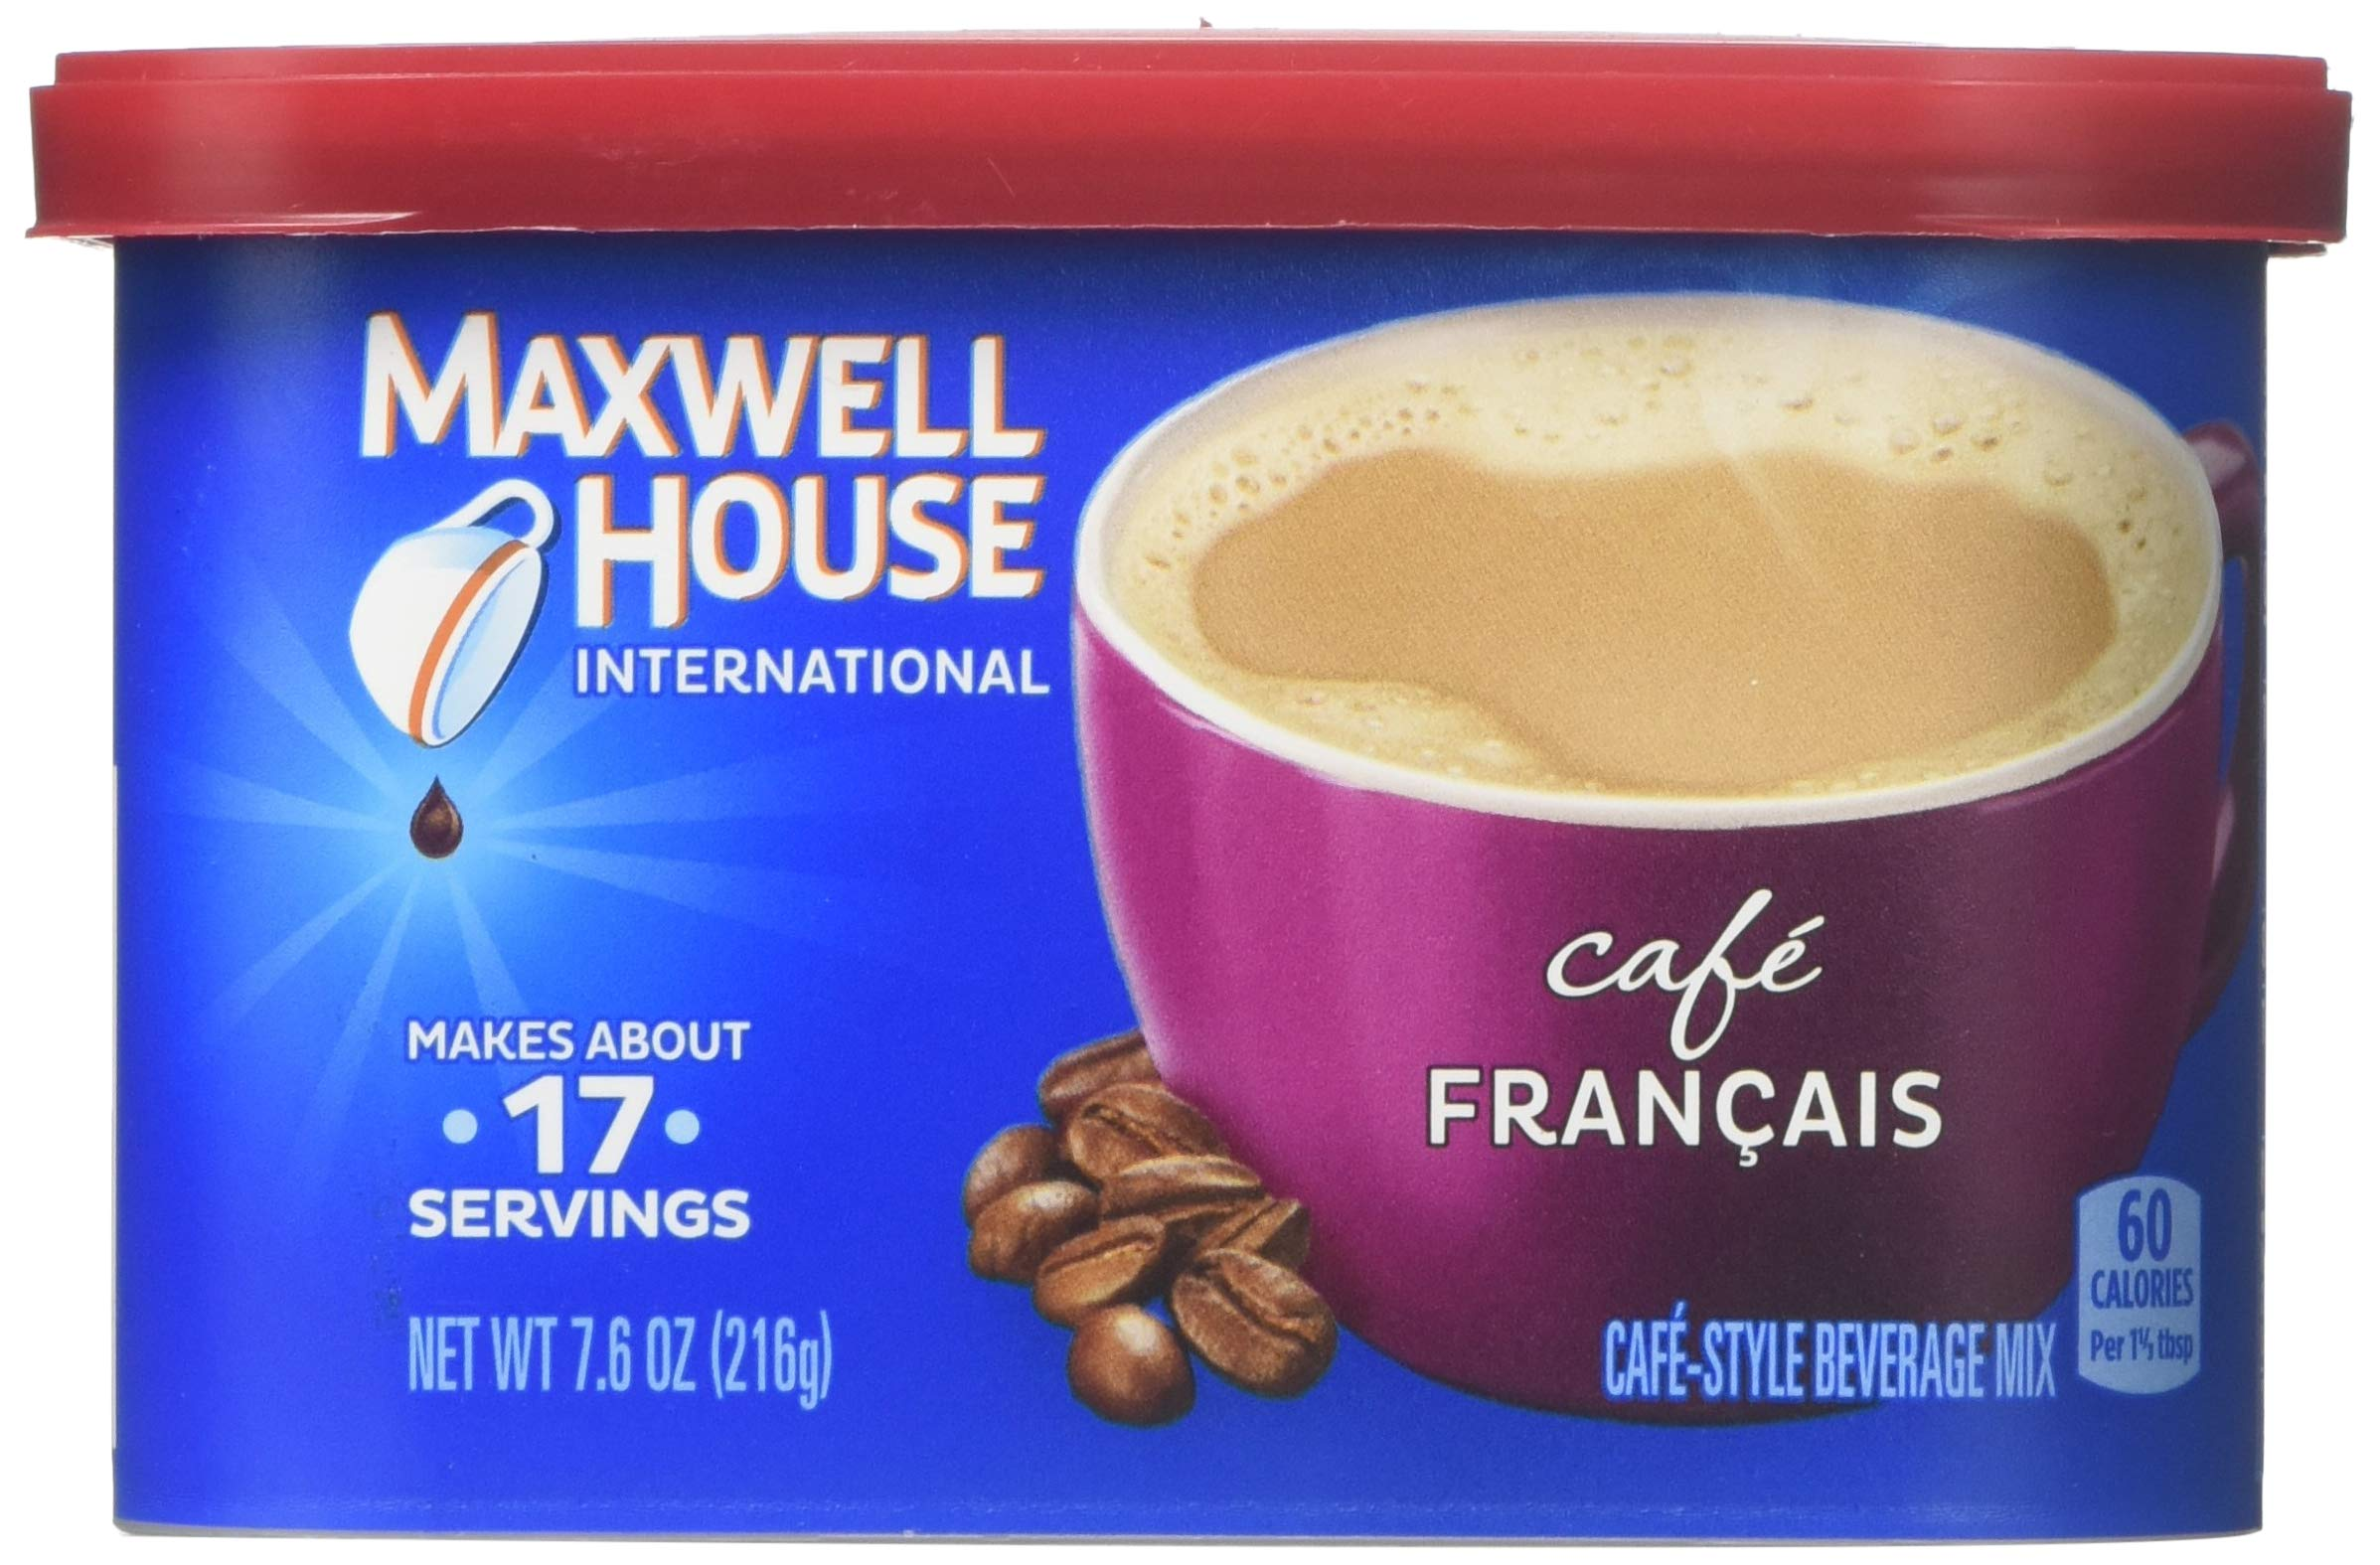 Maxwell House International Coffee Cafe Francais, 7.6-ounce Cans (Pack of 3)